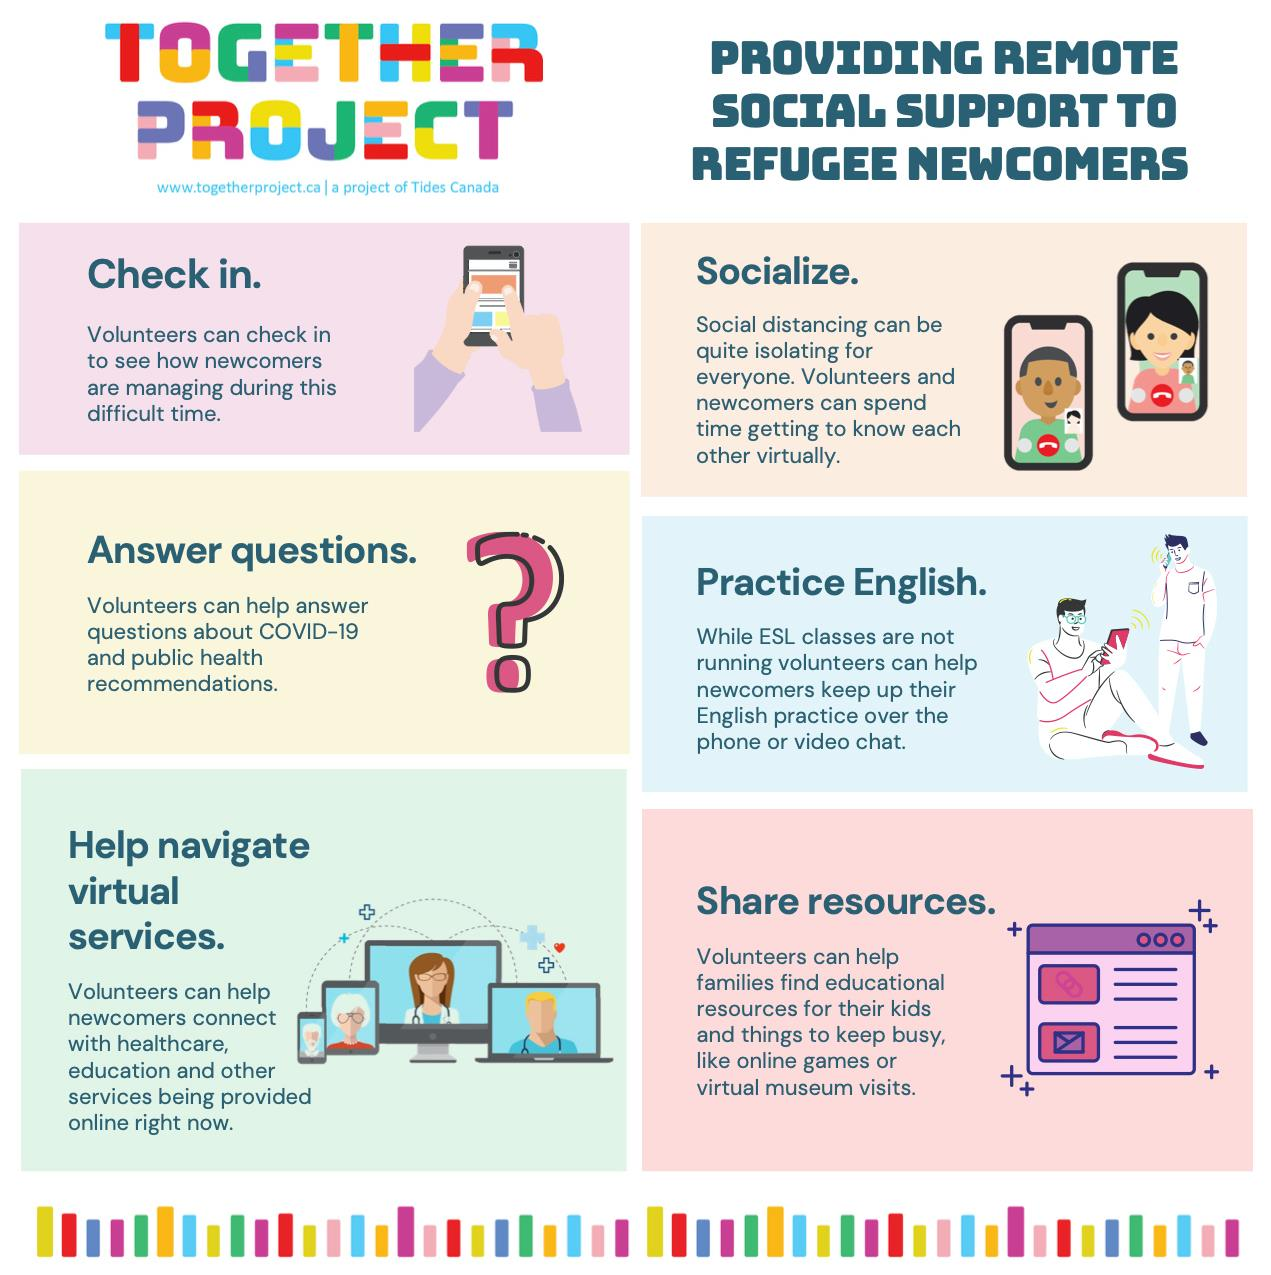 Graphic explains remote social support for newcomers